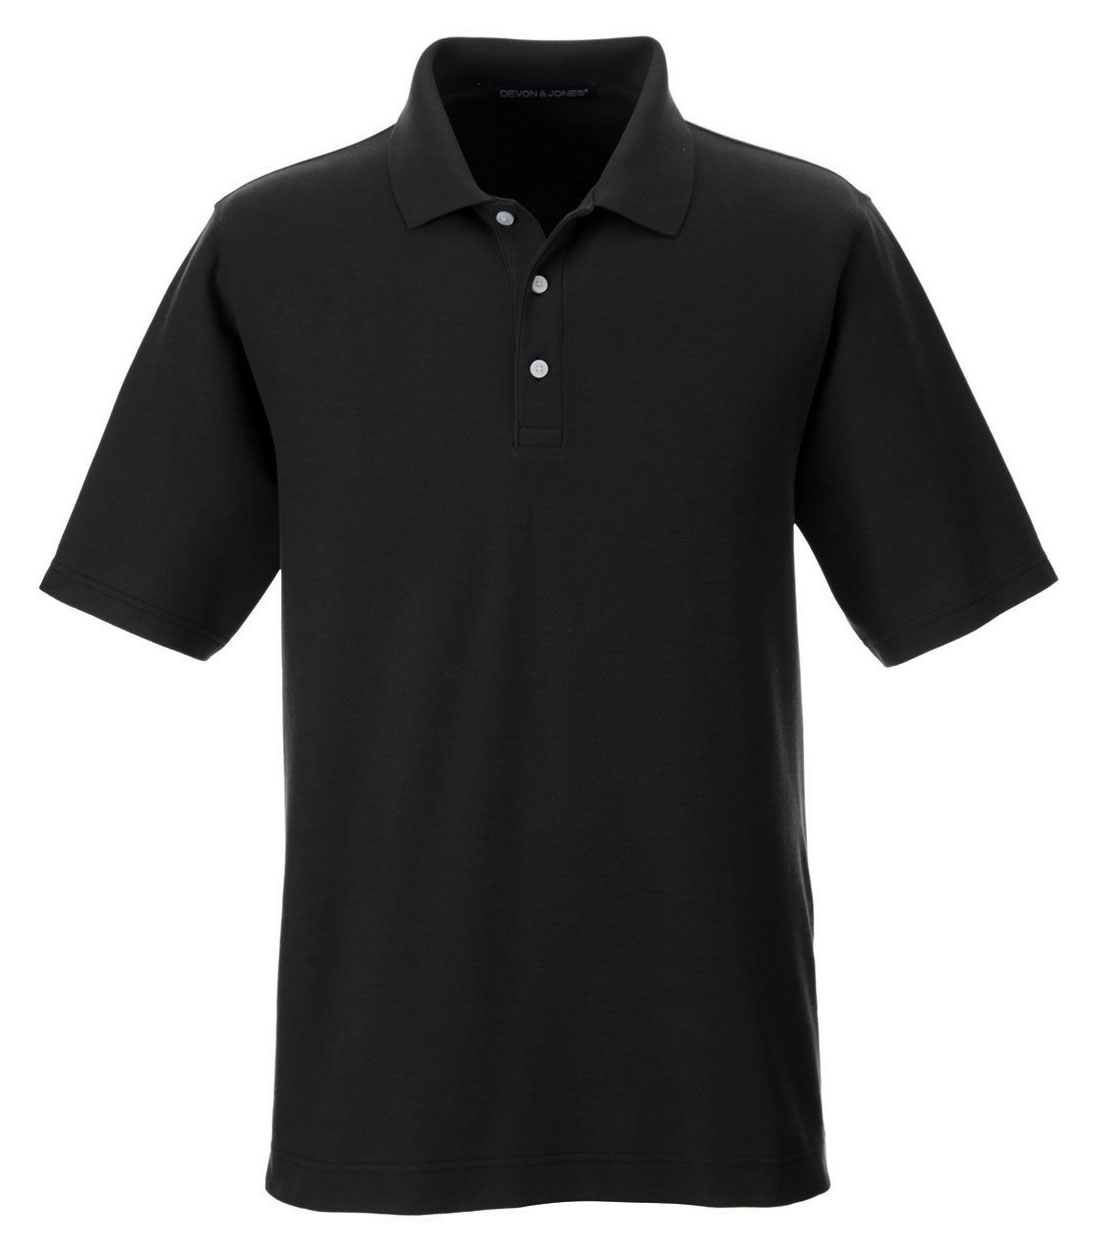 Devon & Jones Mens Tall DryTec20™ Performance Polo